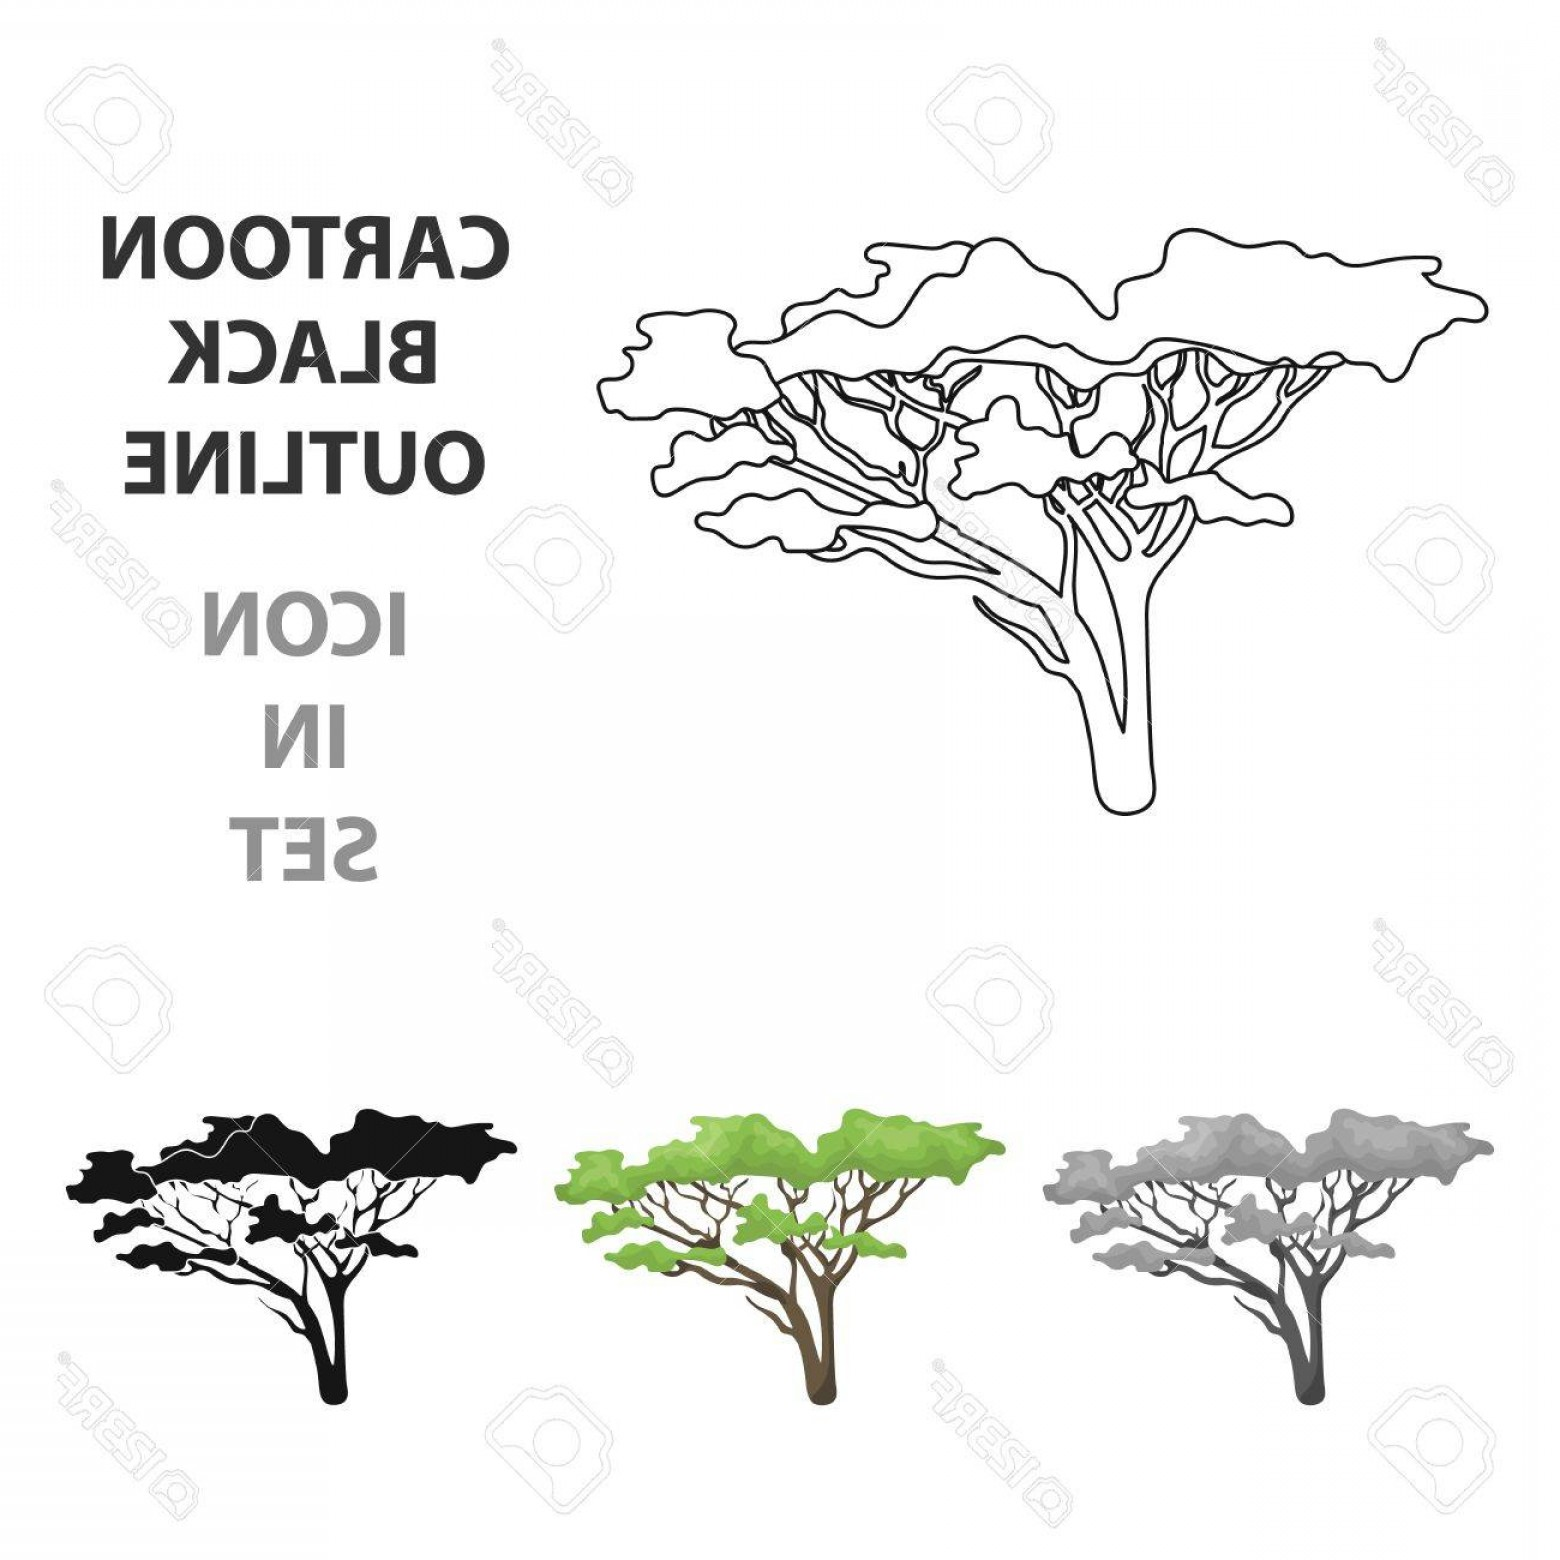 Contoon Free Black Vector Tree: Photostock Vector Tree In The Savannah African Single Icon In Cartoon Style Vector Symbol Stock Illustration